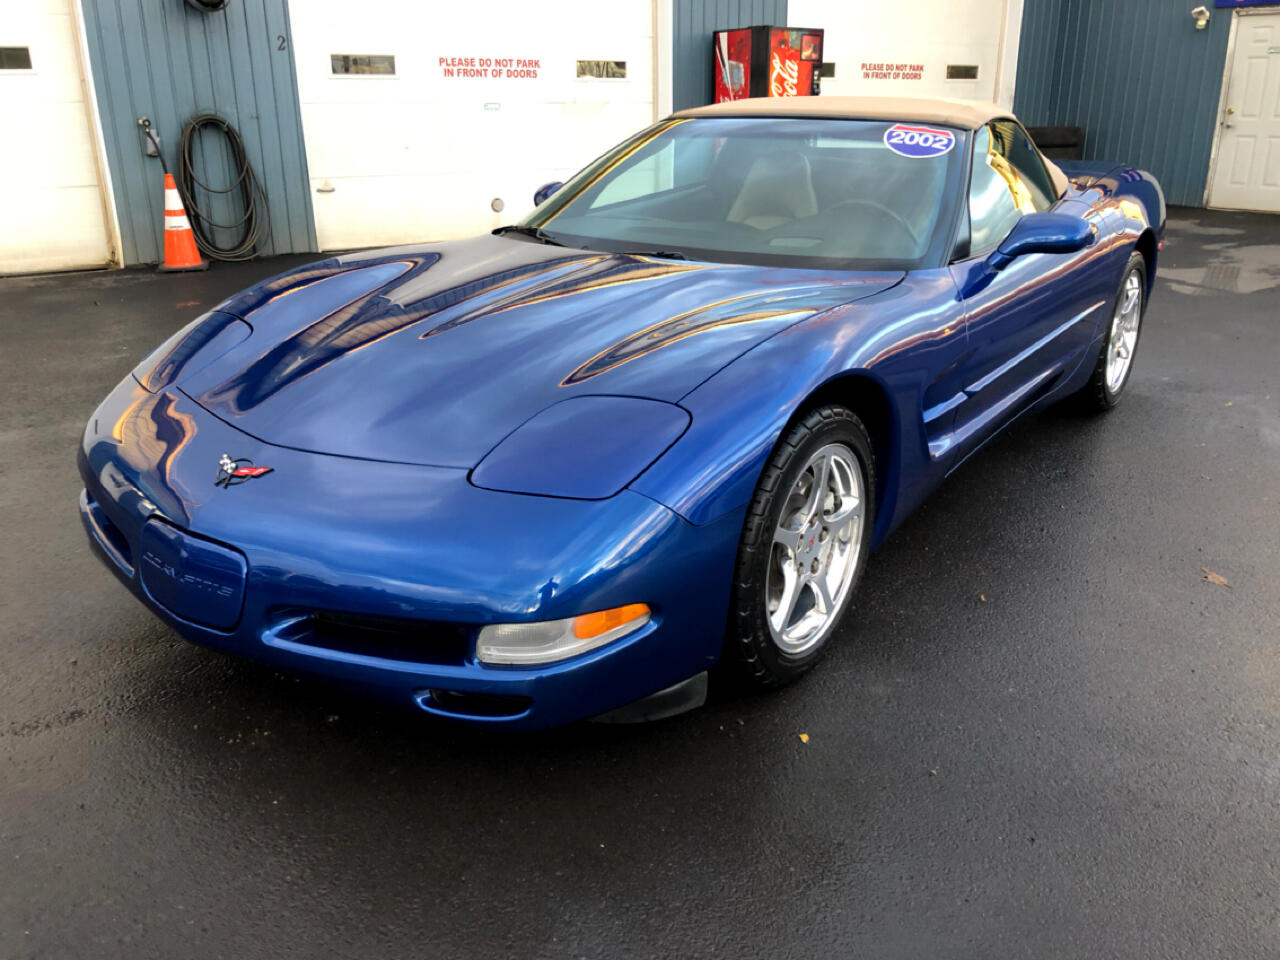 Chevrolet Corvette 2dr Convertible 2002